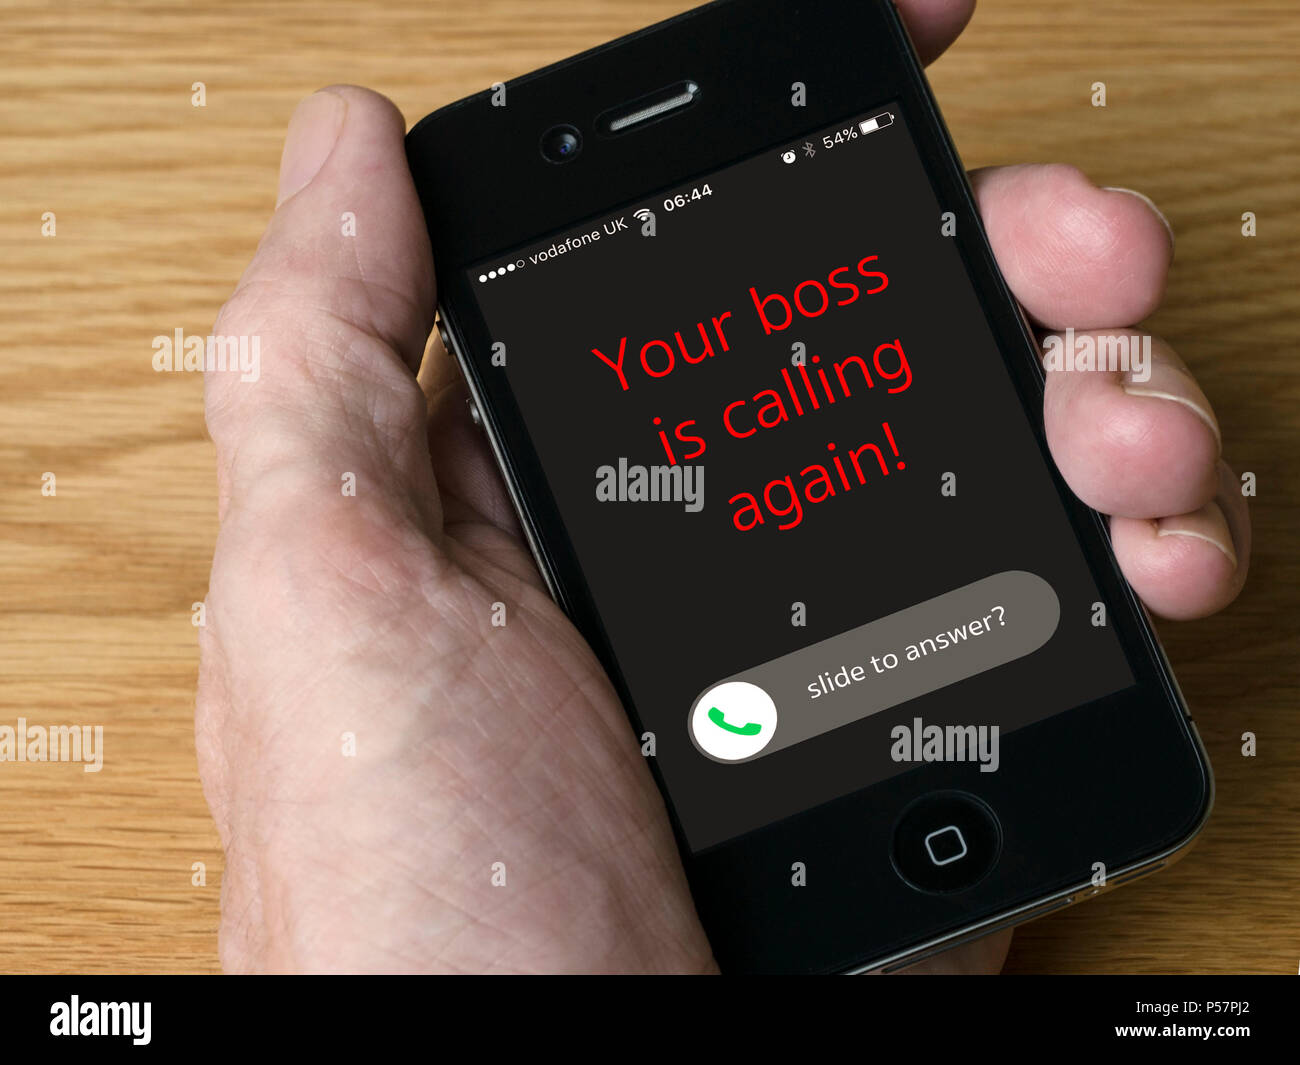 Concept image - incoming phonecall from boss illustrating modern pressures on work life balance, the pressure of work, or stress of work - Stock Image